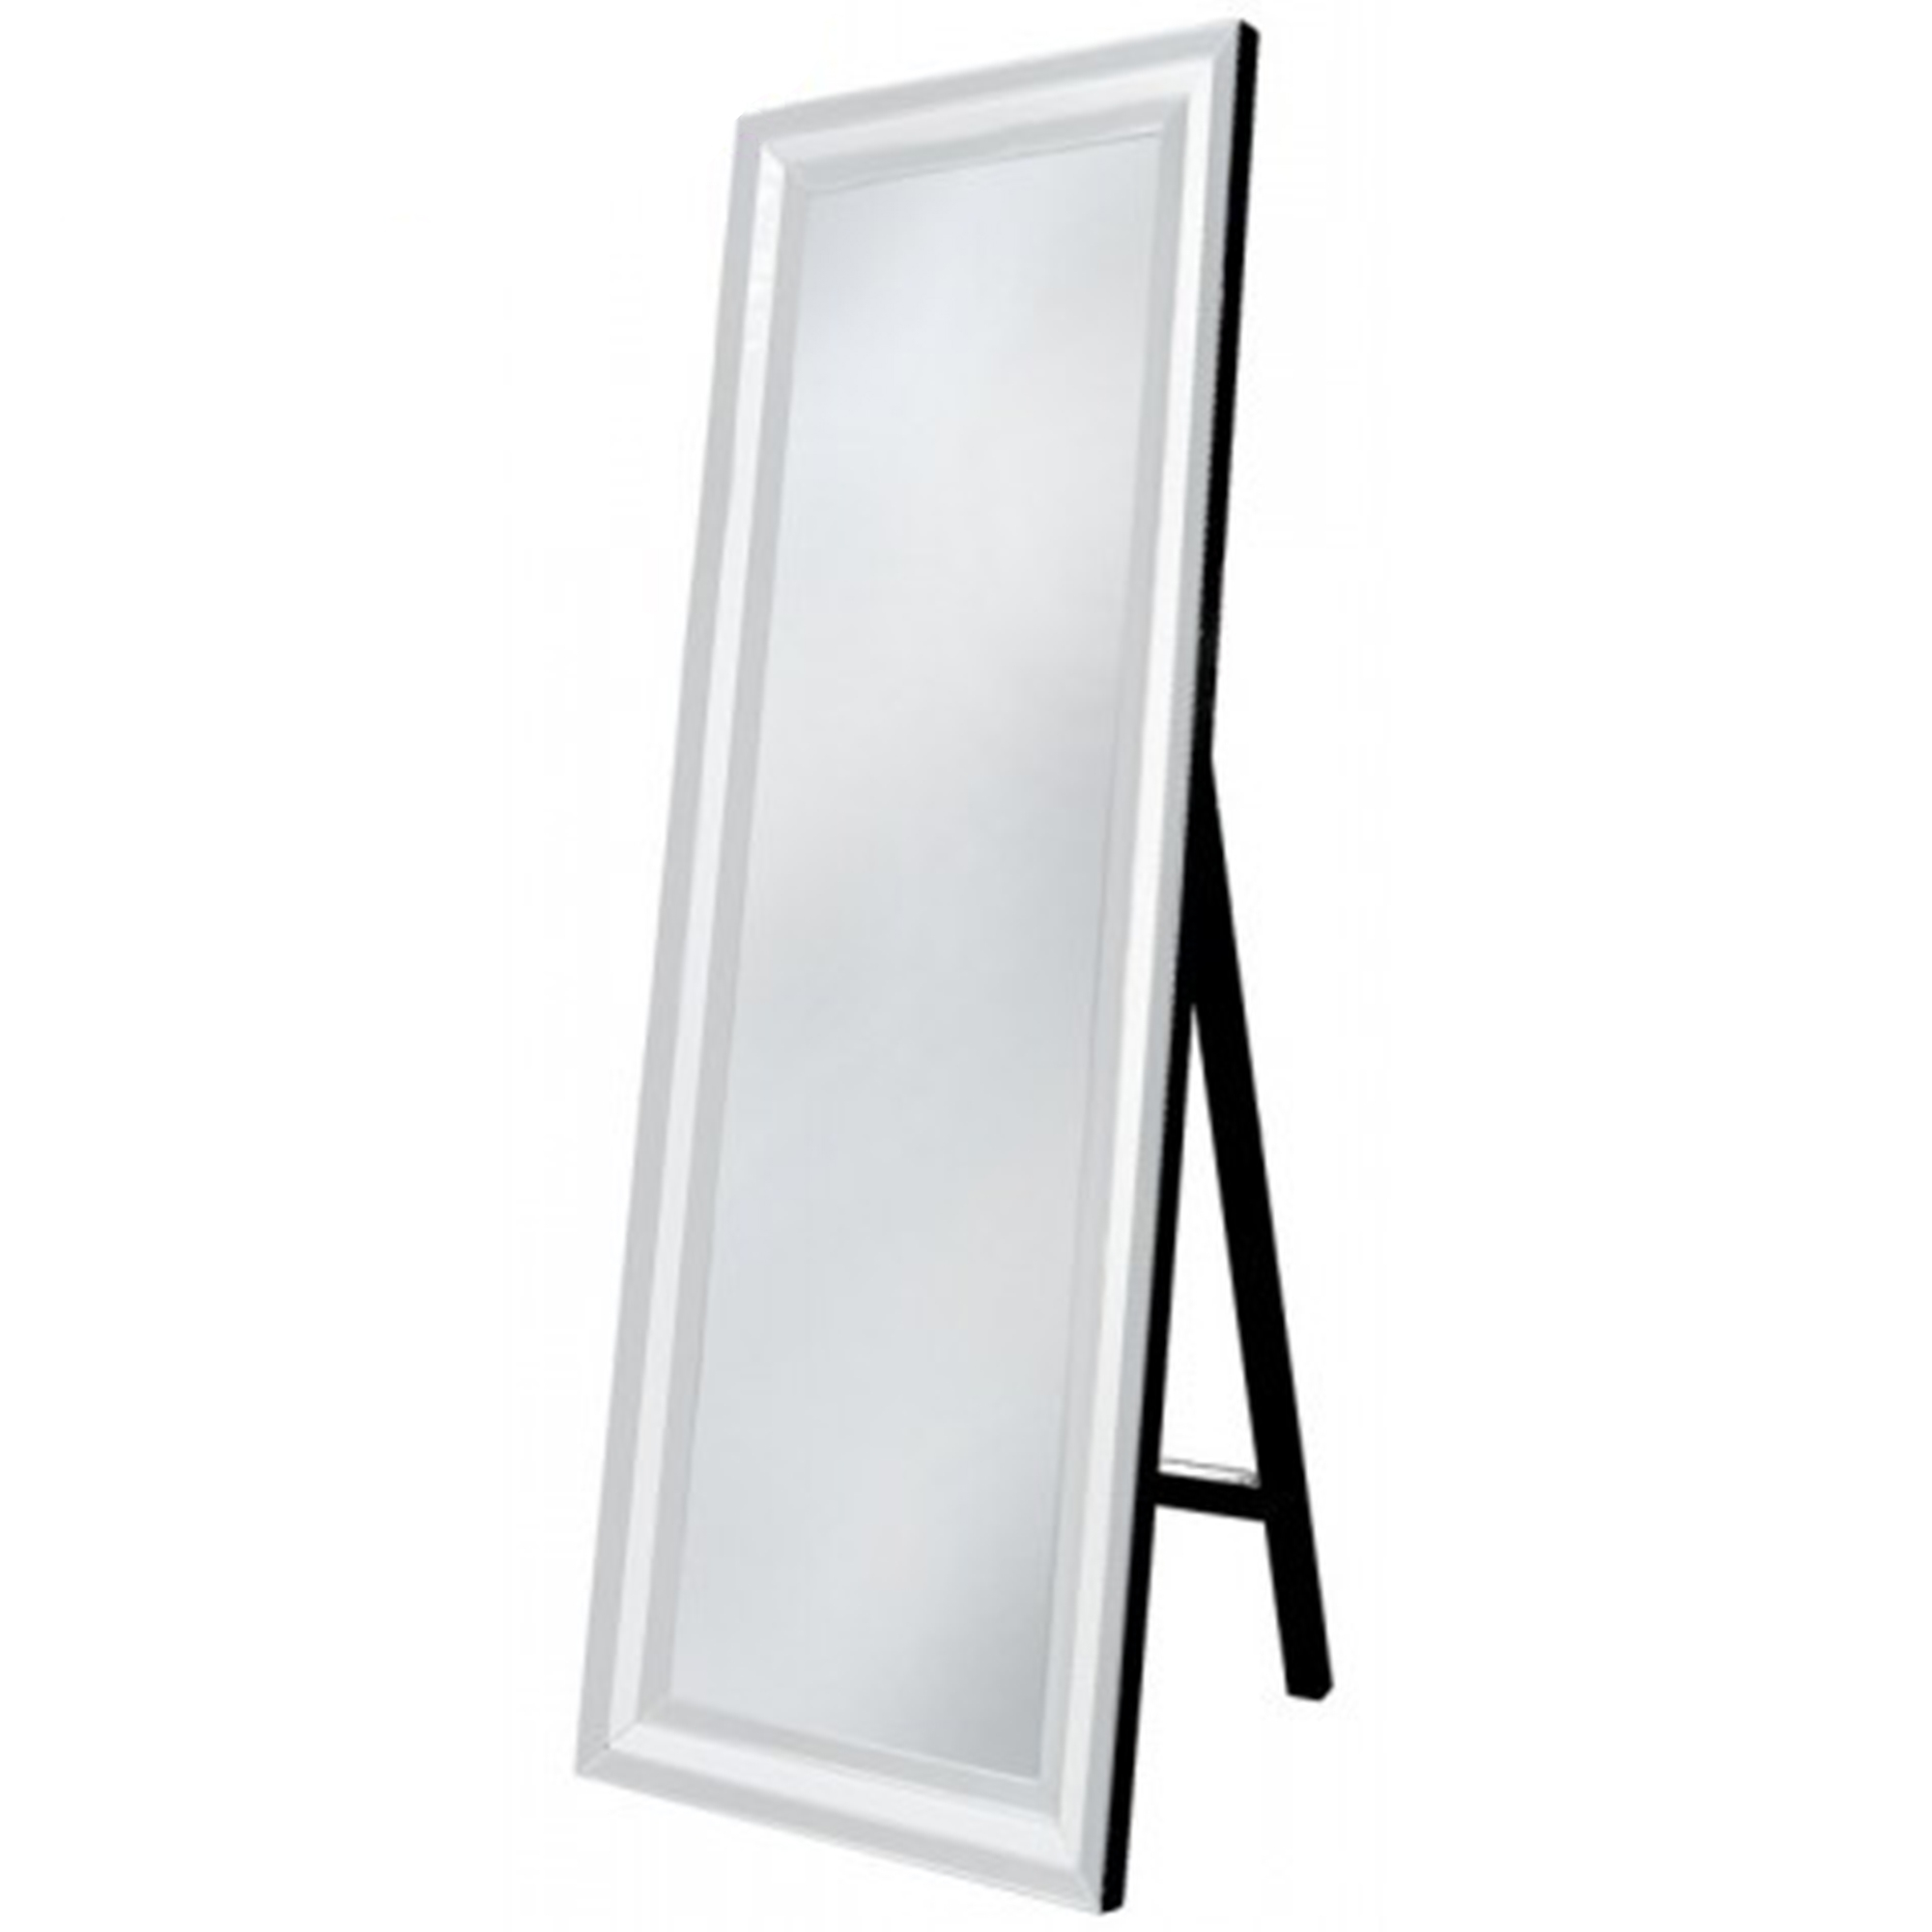 Savona white floorstanding mirror glass furniture online Mirror glass furniture